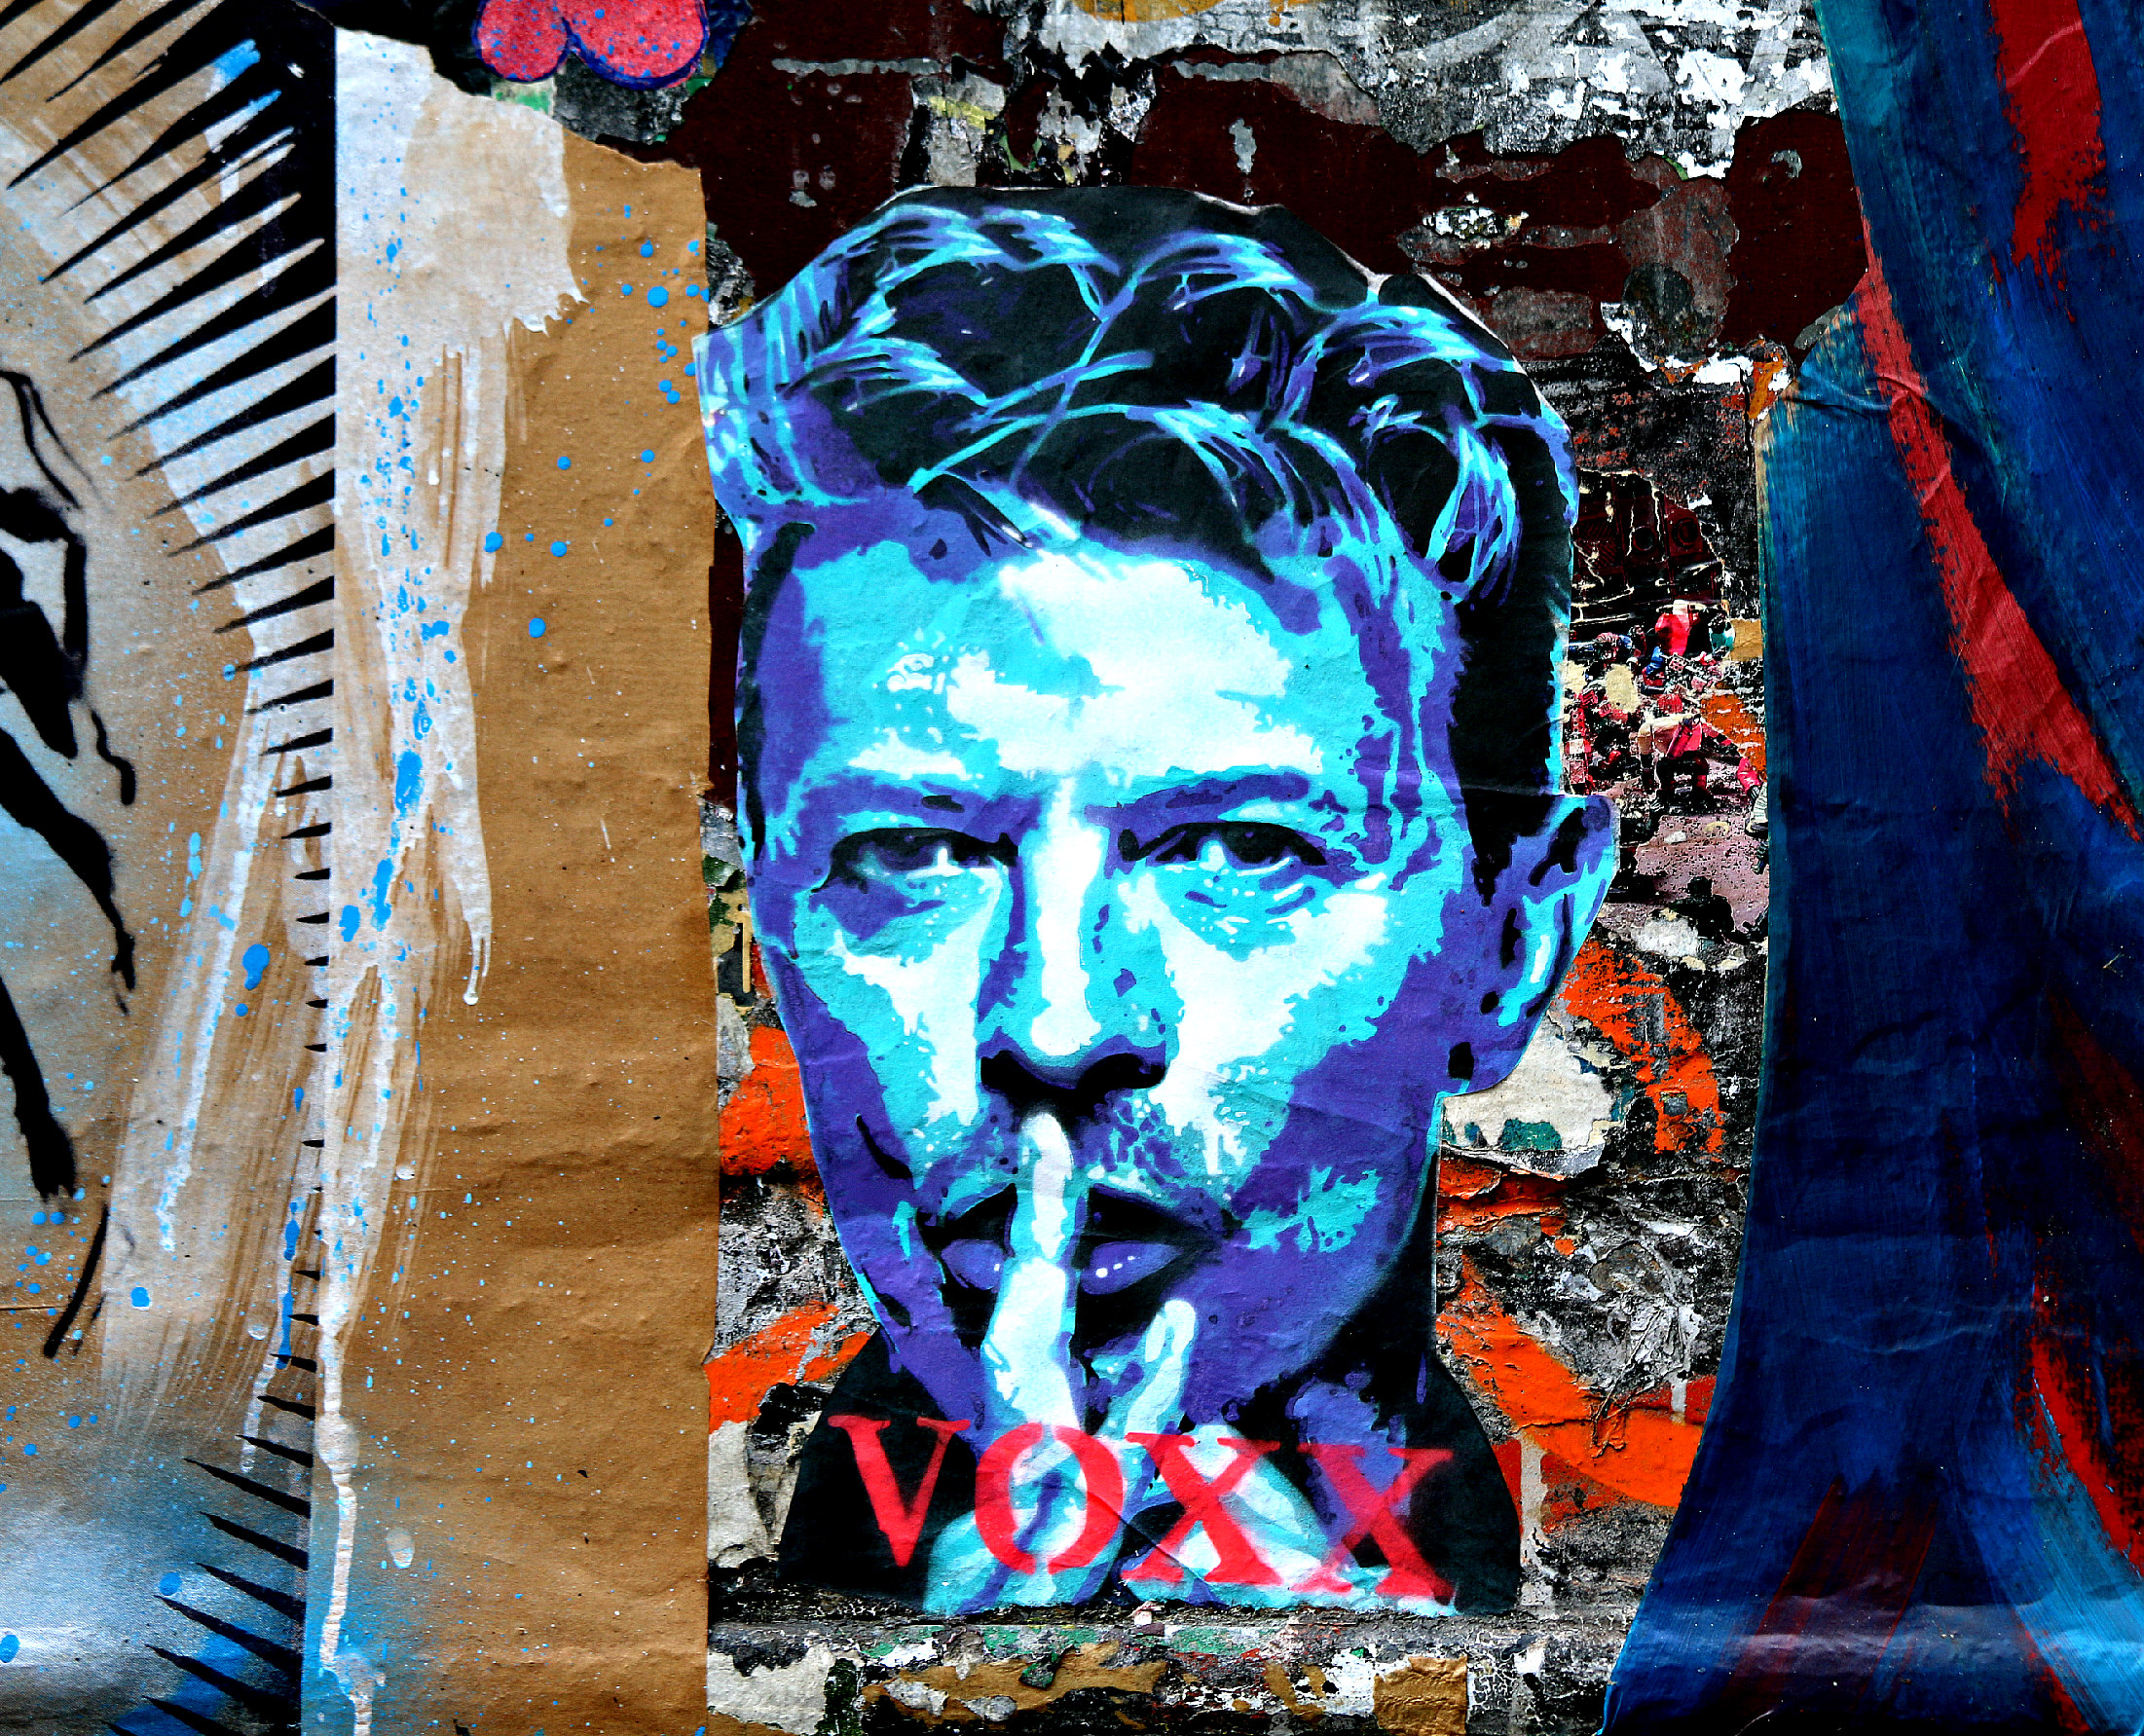 where to find art in shoreditch fournier street David Bowie Voxx Romana